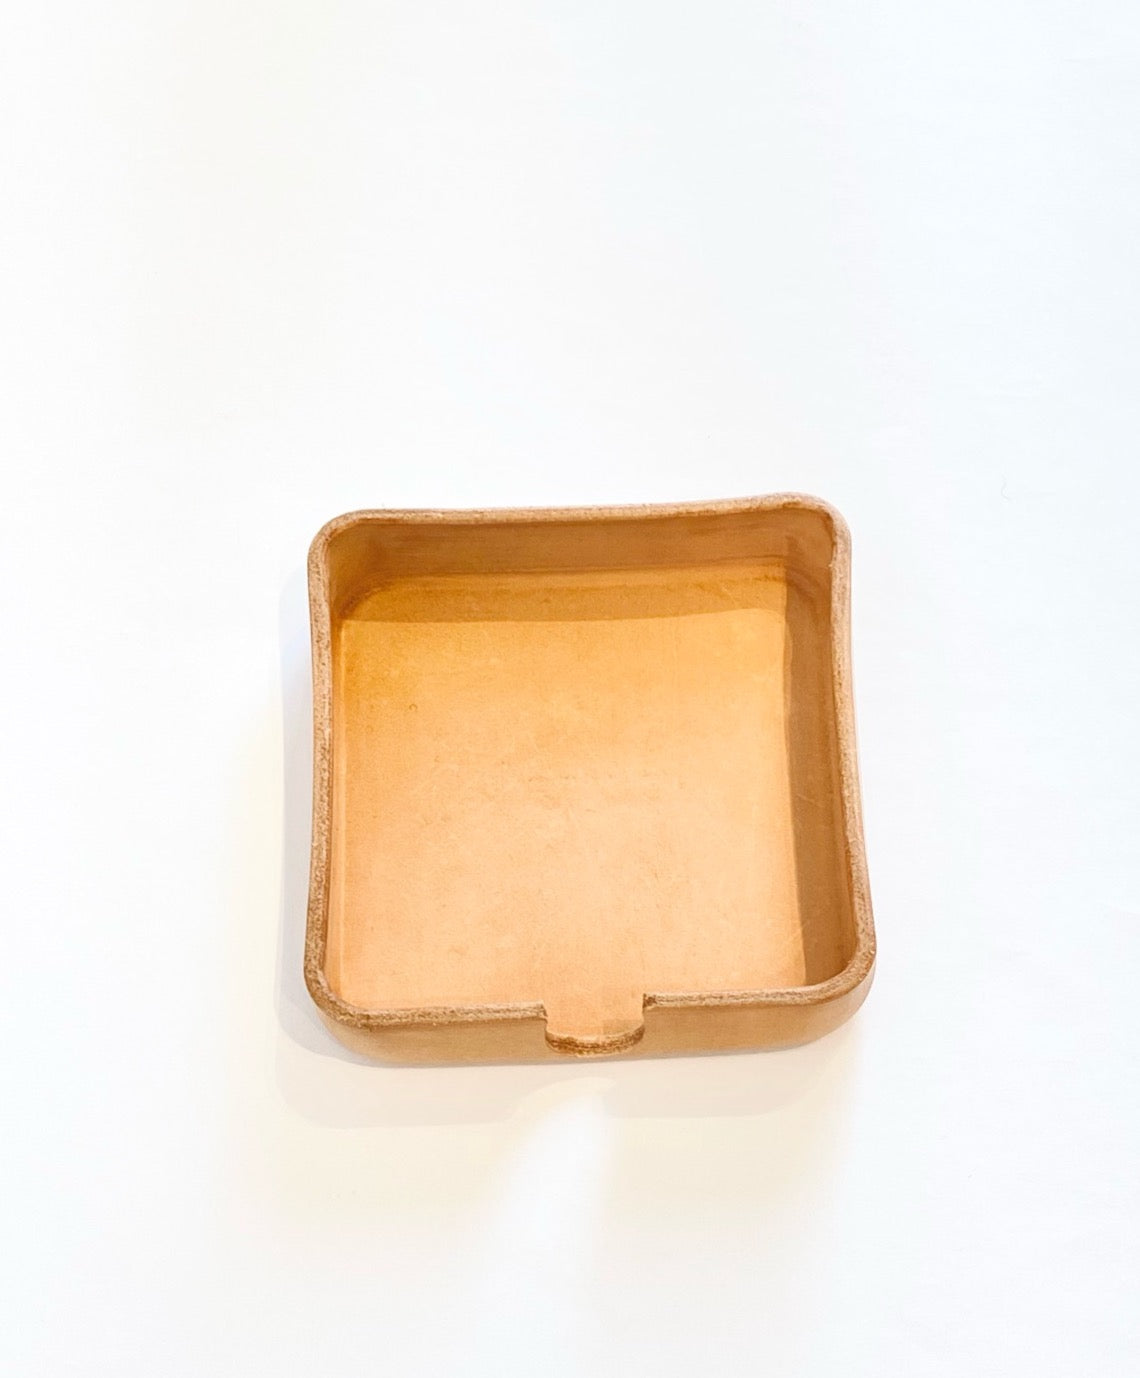 Coaster Caddy - Square Leather